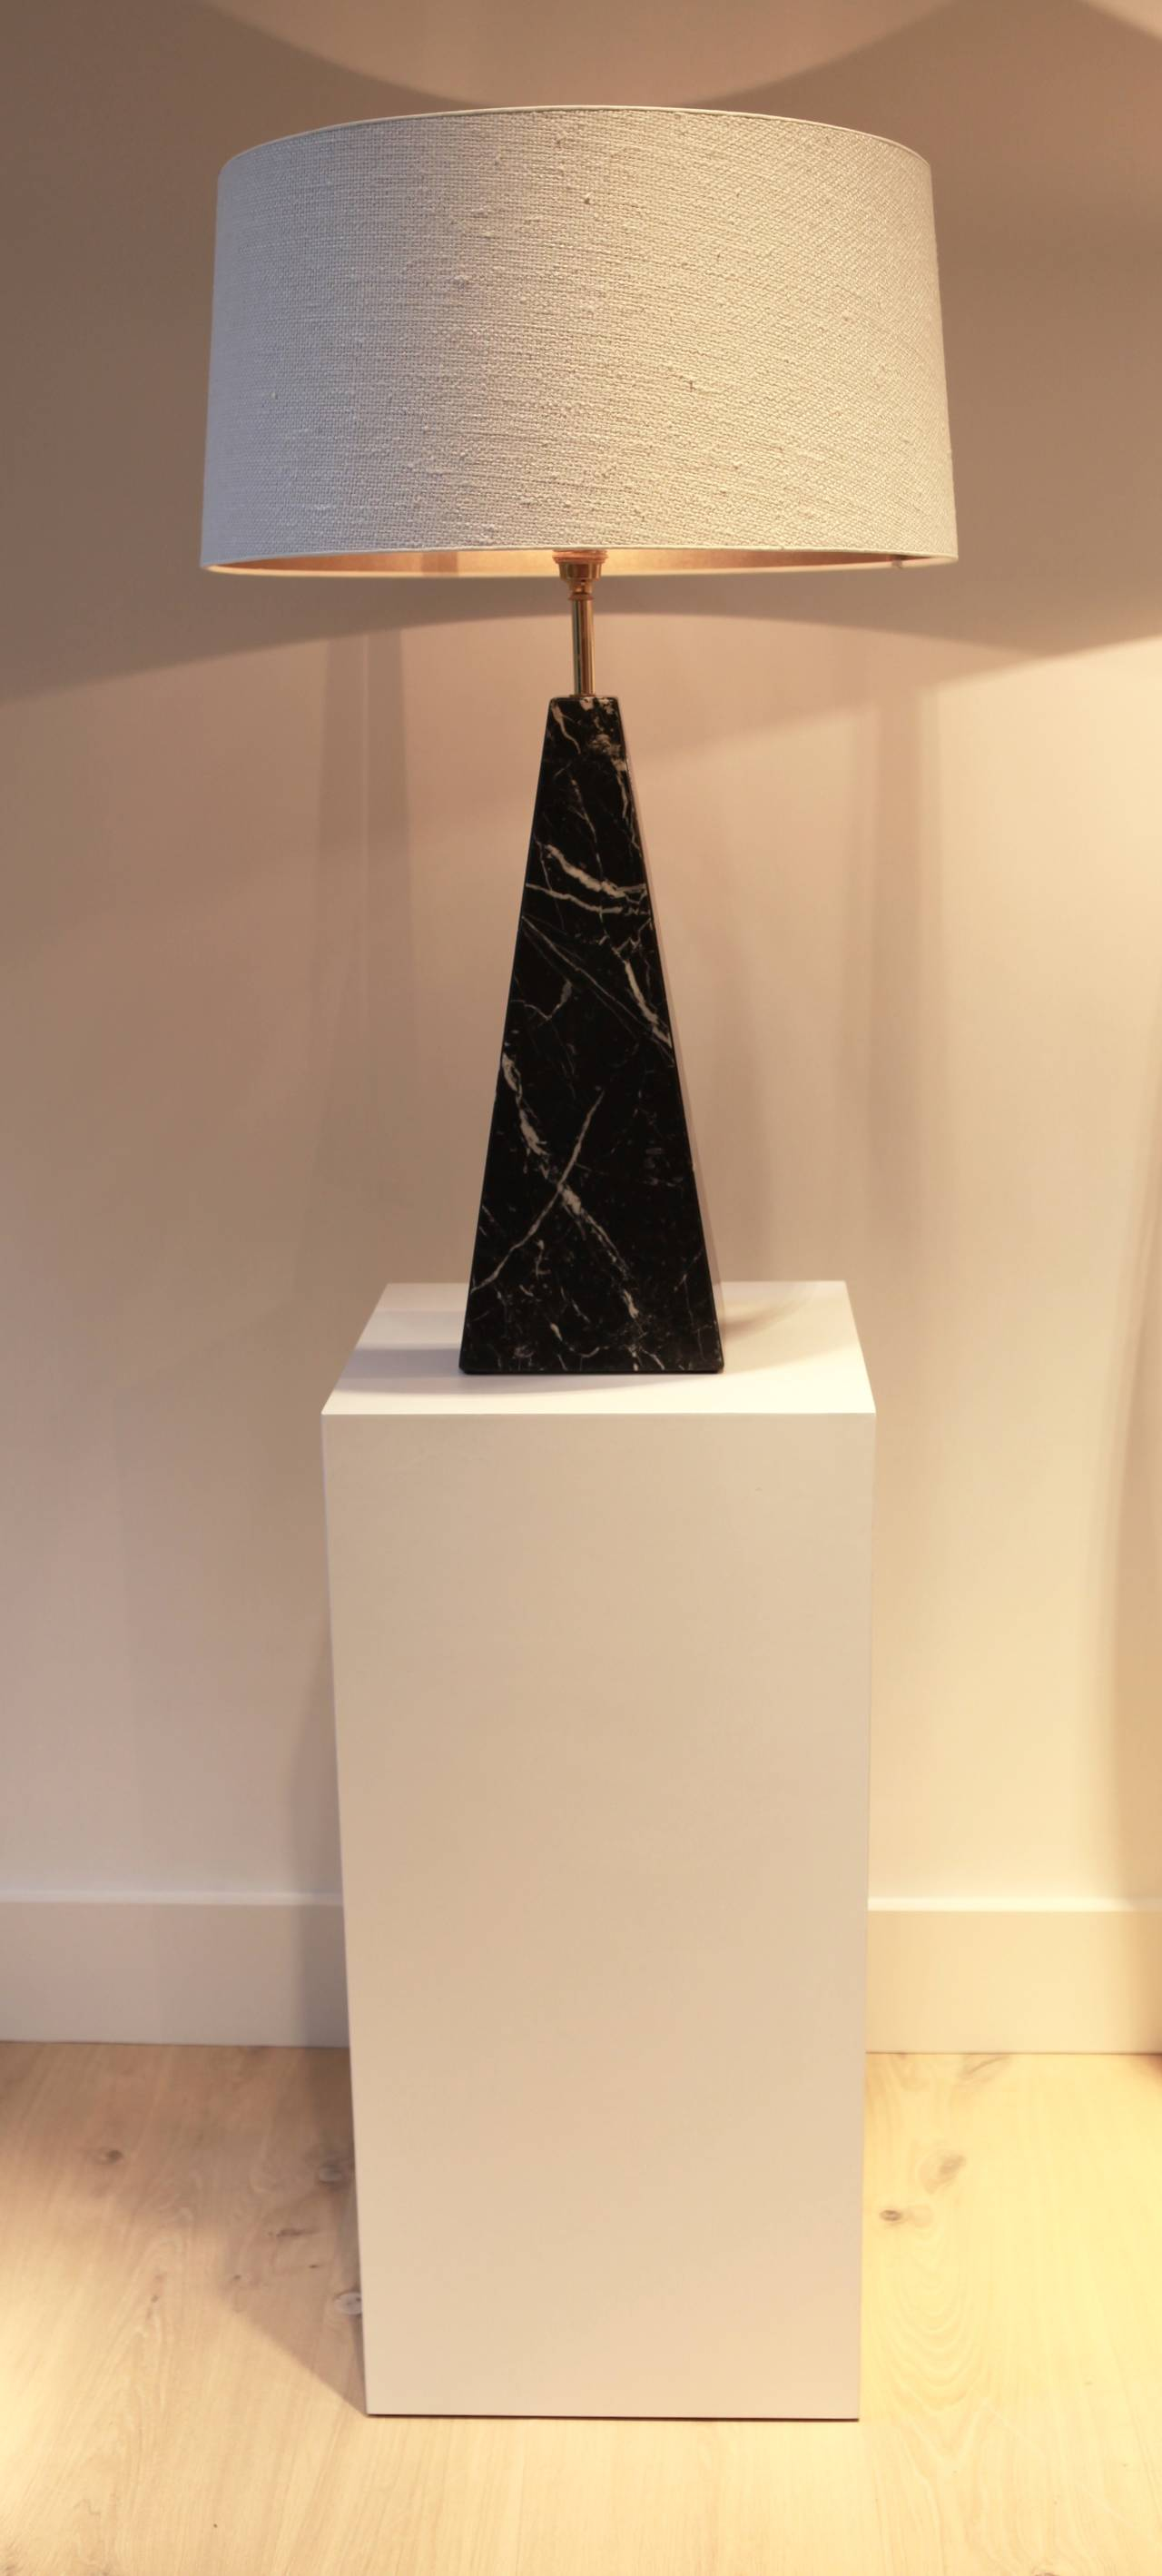 Black Obelisk Table Lamps, Italy, 1970s In Excellent Condition For Sale In Hamburg, Hamburg